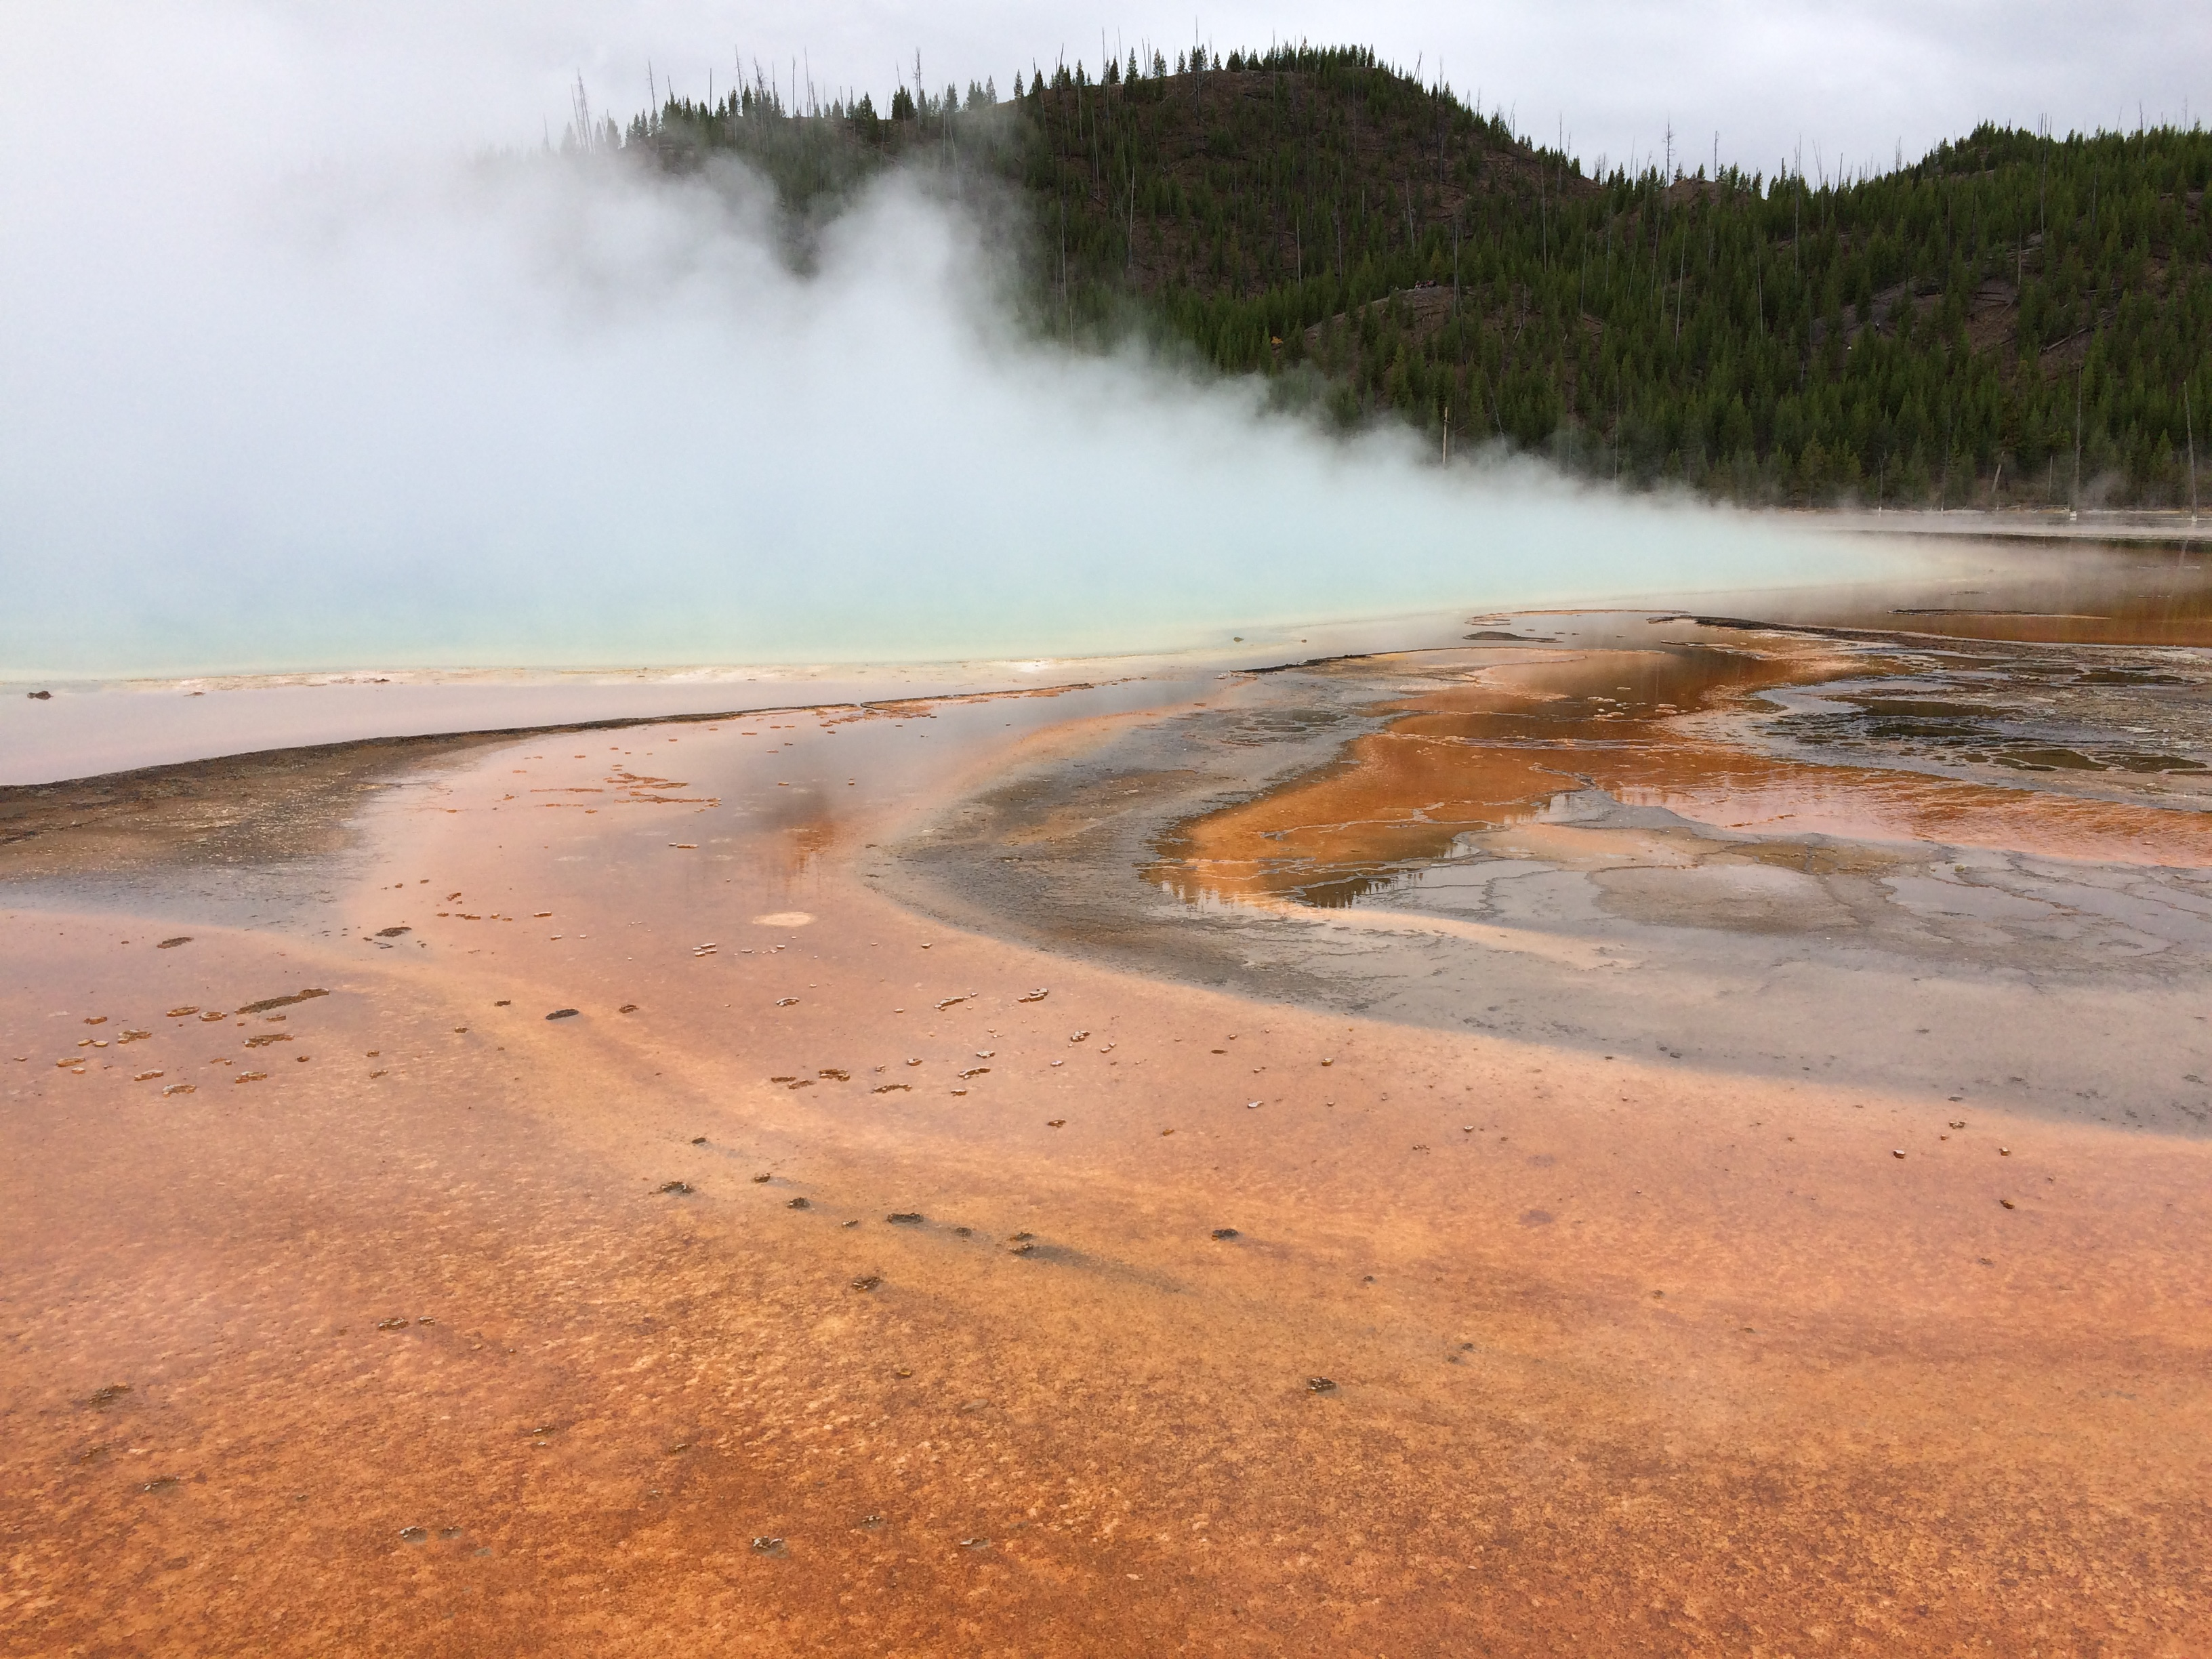 An orange bacterial mat in Yellowstone National Park. Steam rises from a hot spring in the background.